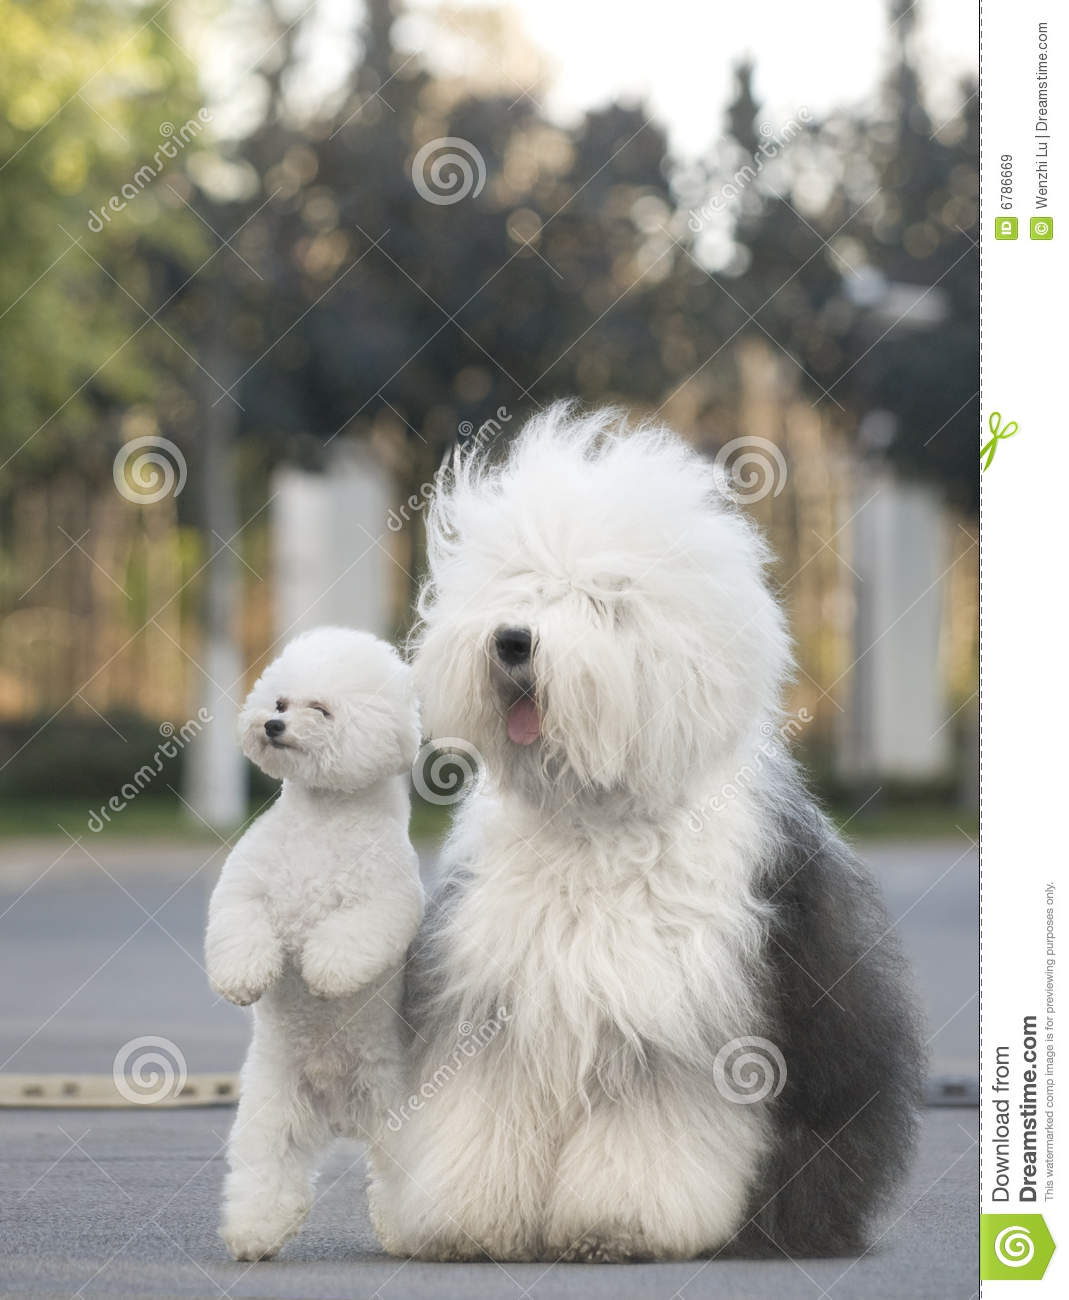 Old English Sheepdog Poodle Stock Image Image Of Qualities